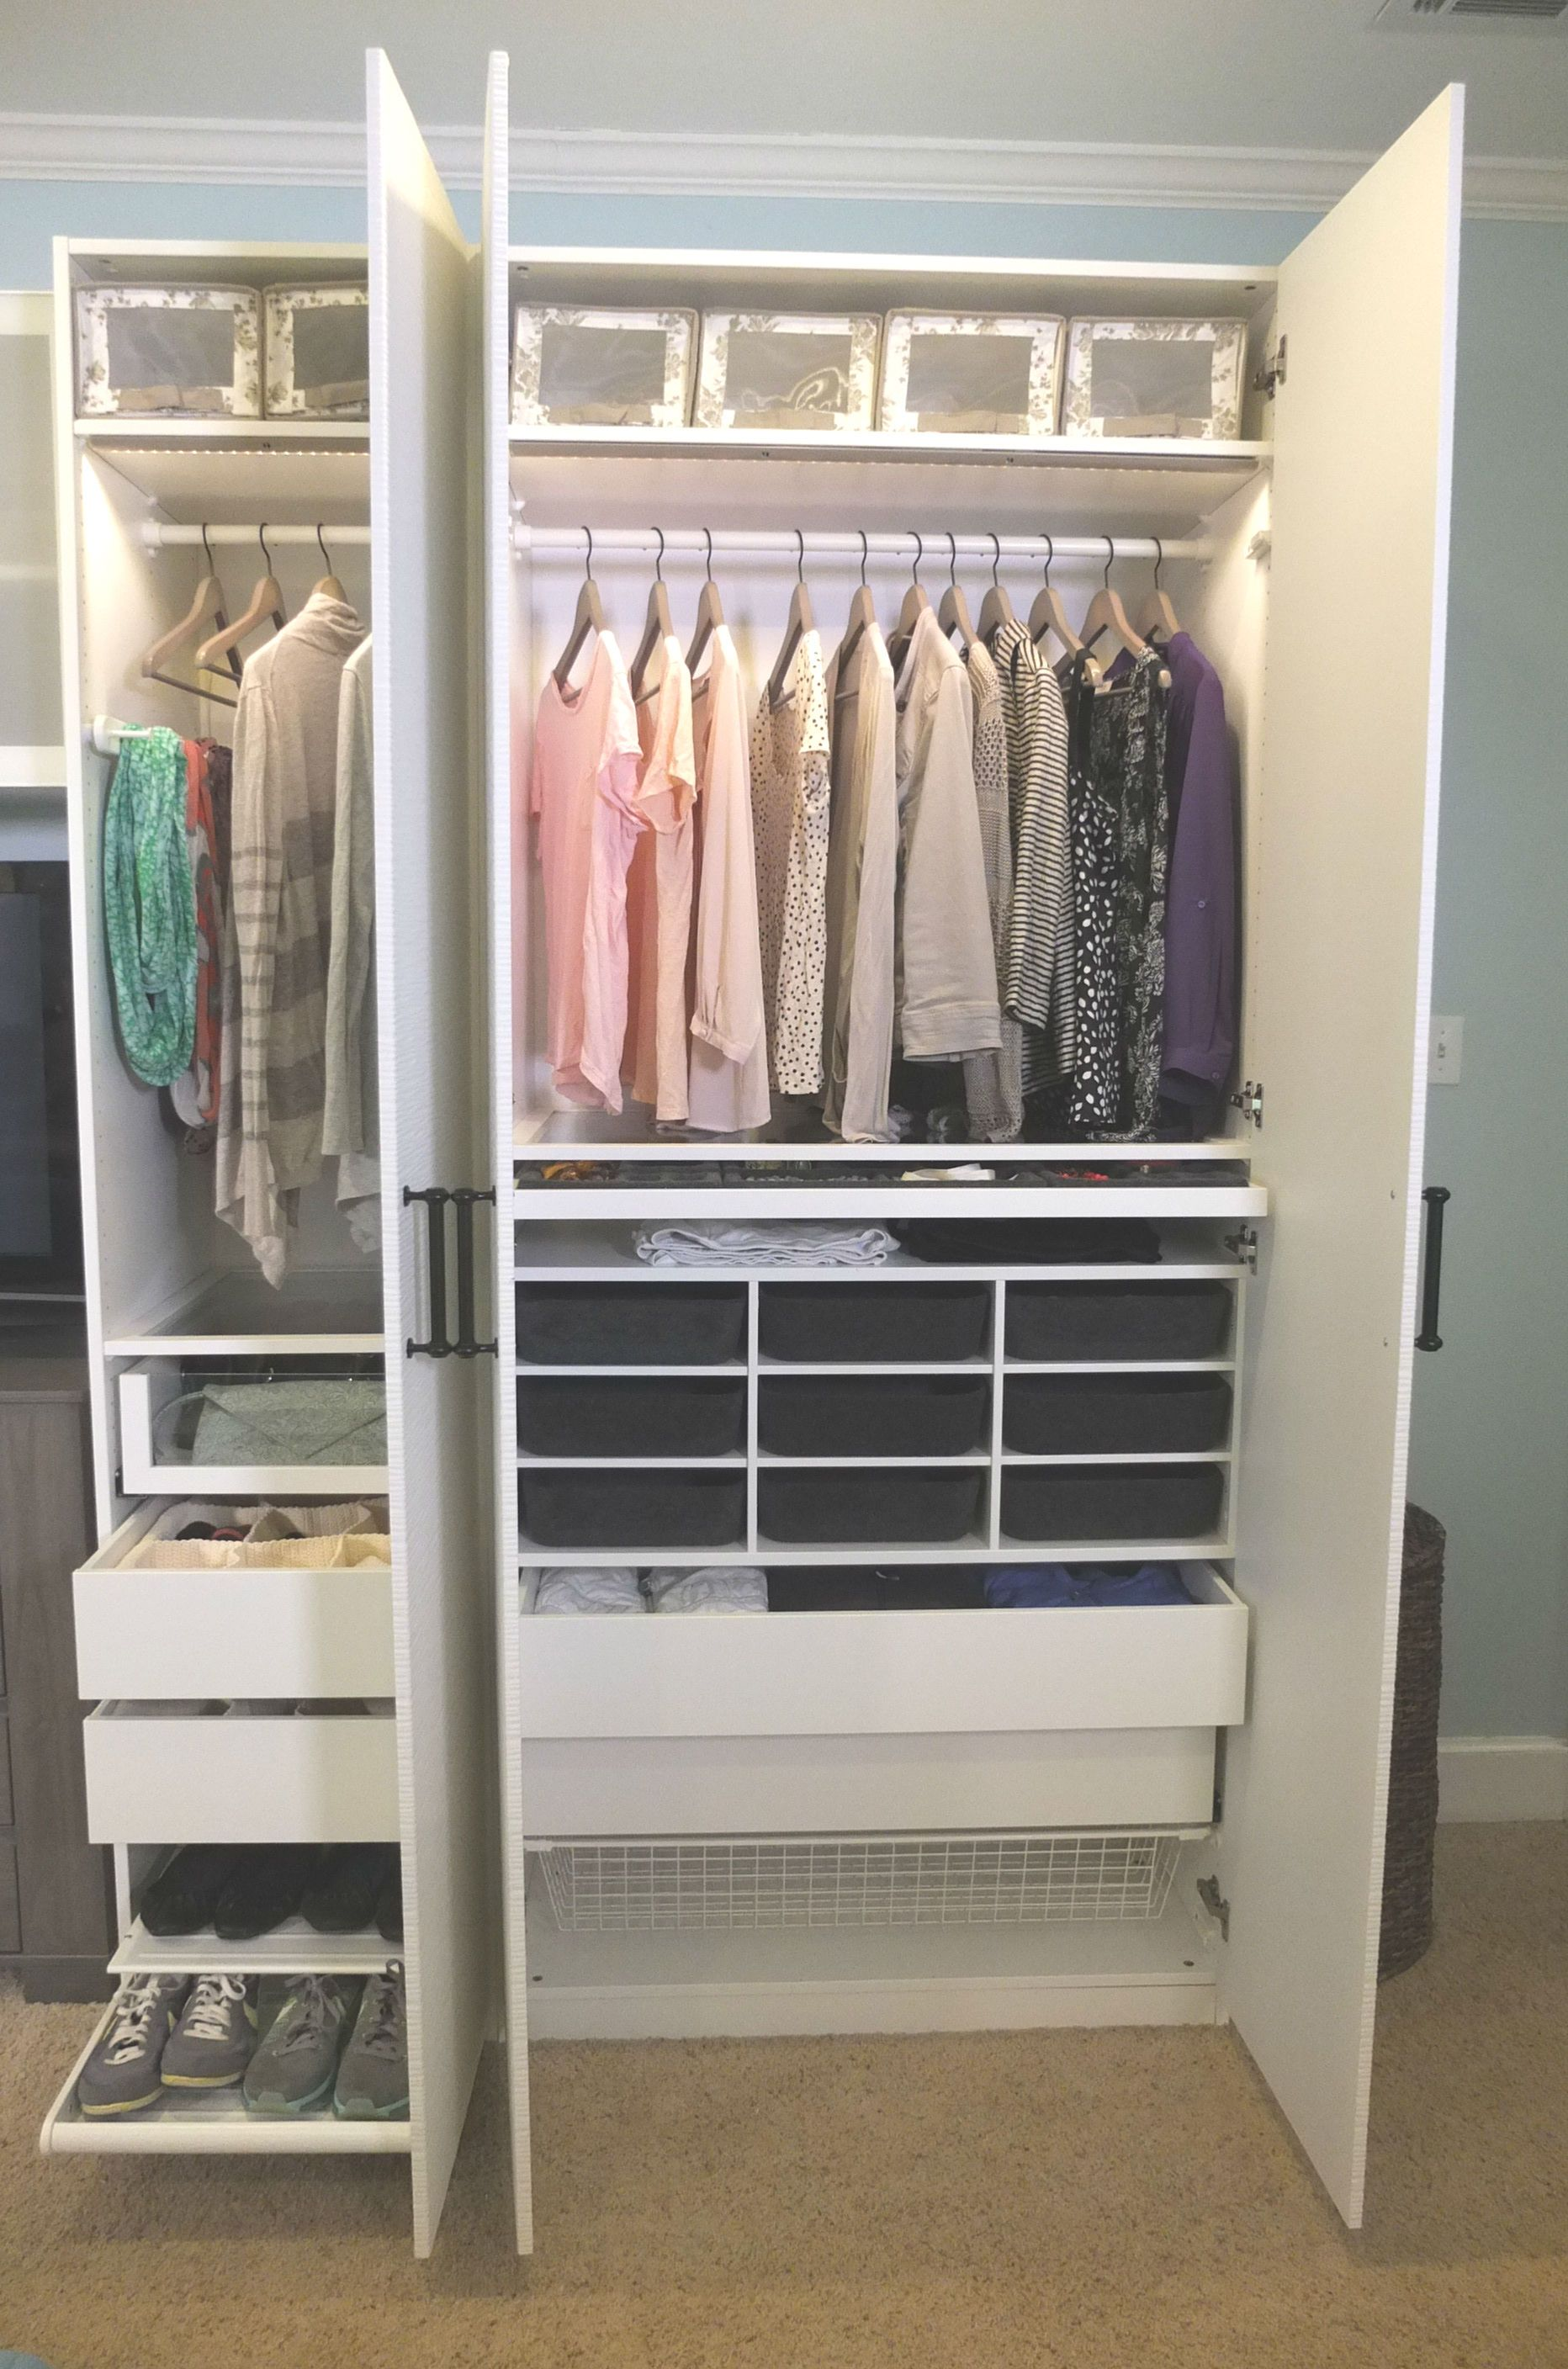 A personalized PAX wardrobe provides the storage you need